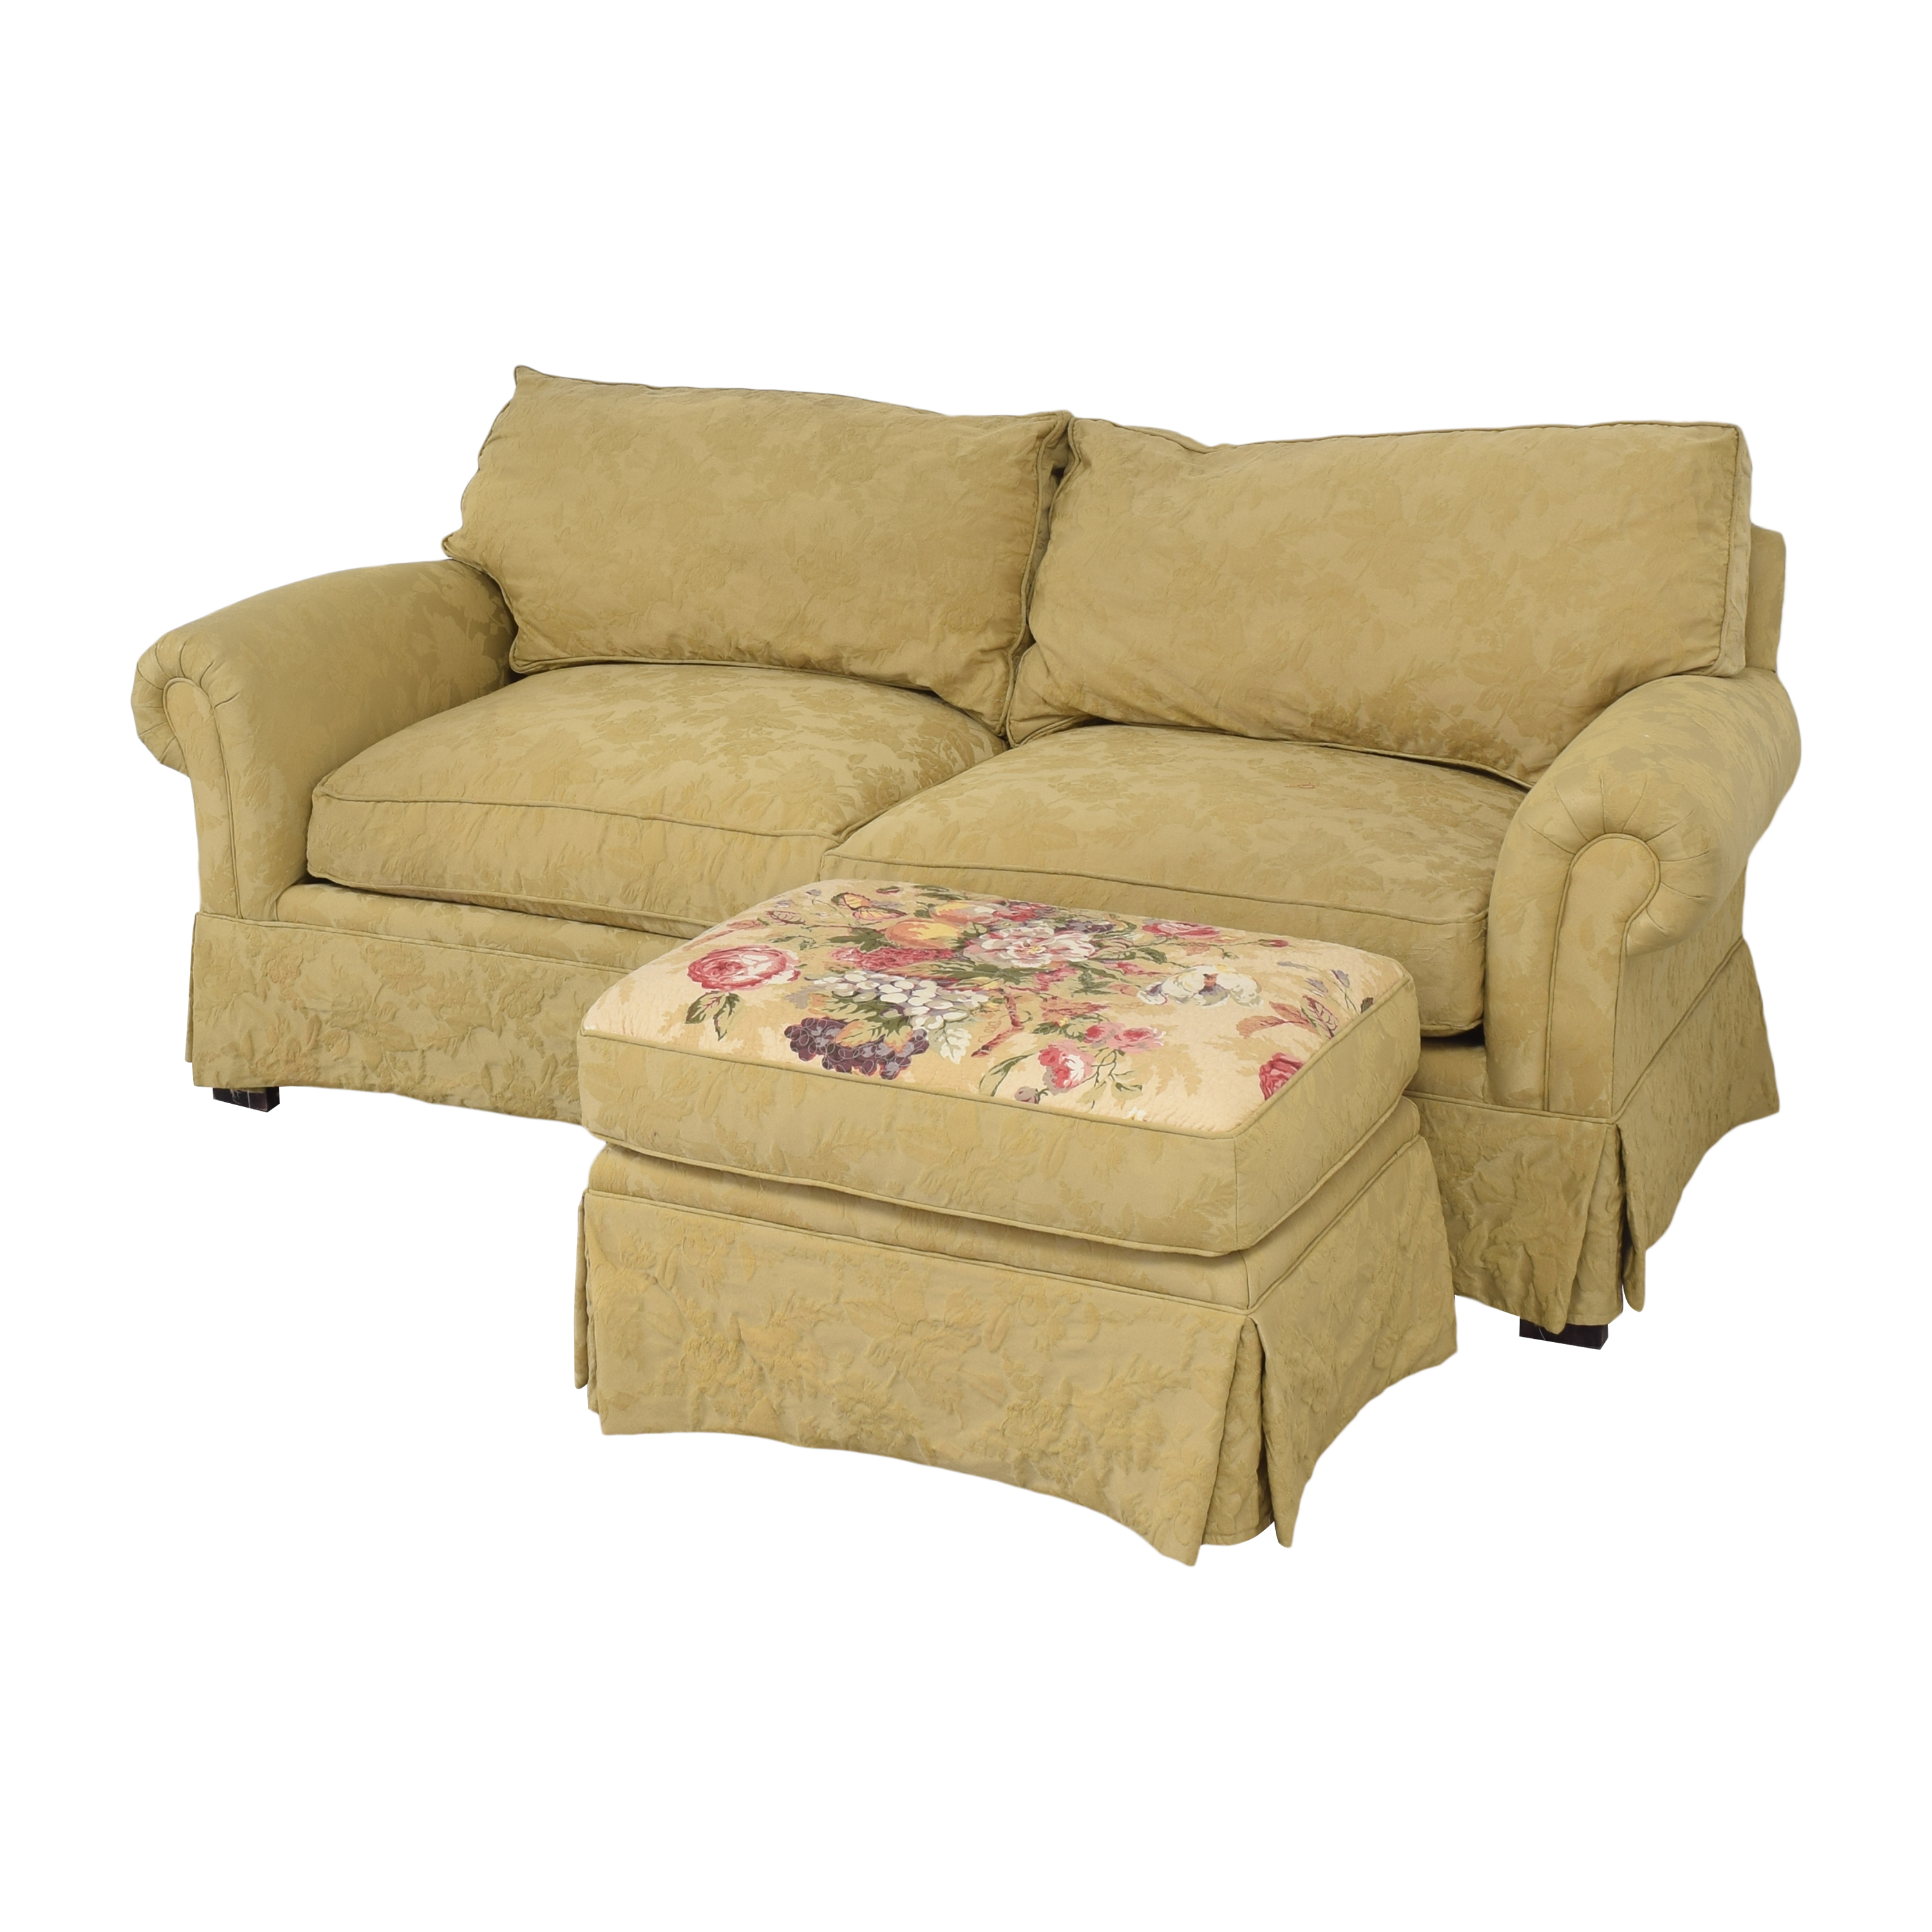 Domain Home Domain Home Covent Garden Sofa used